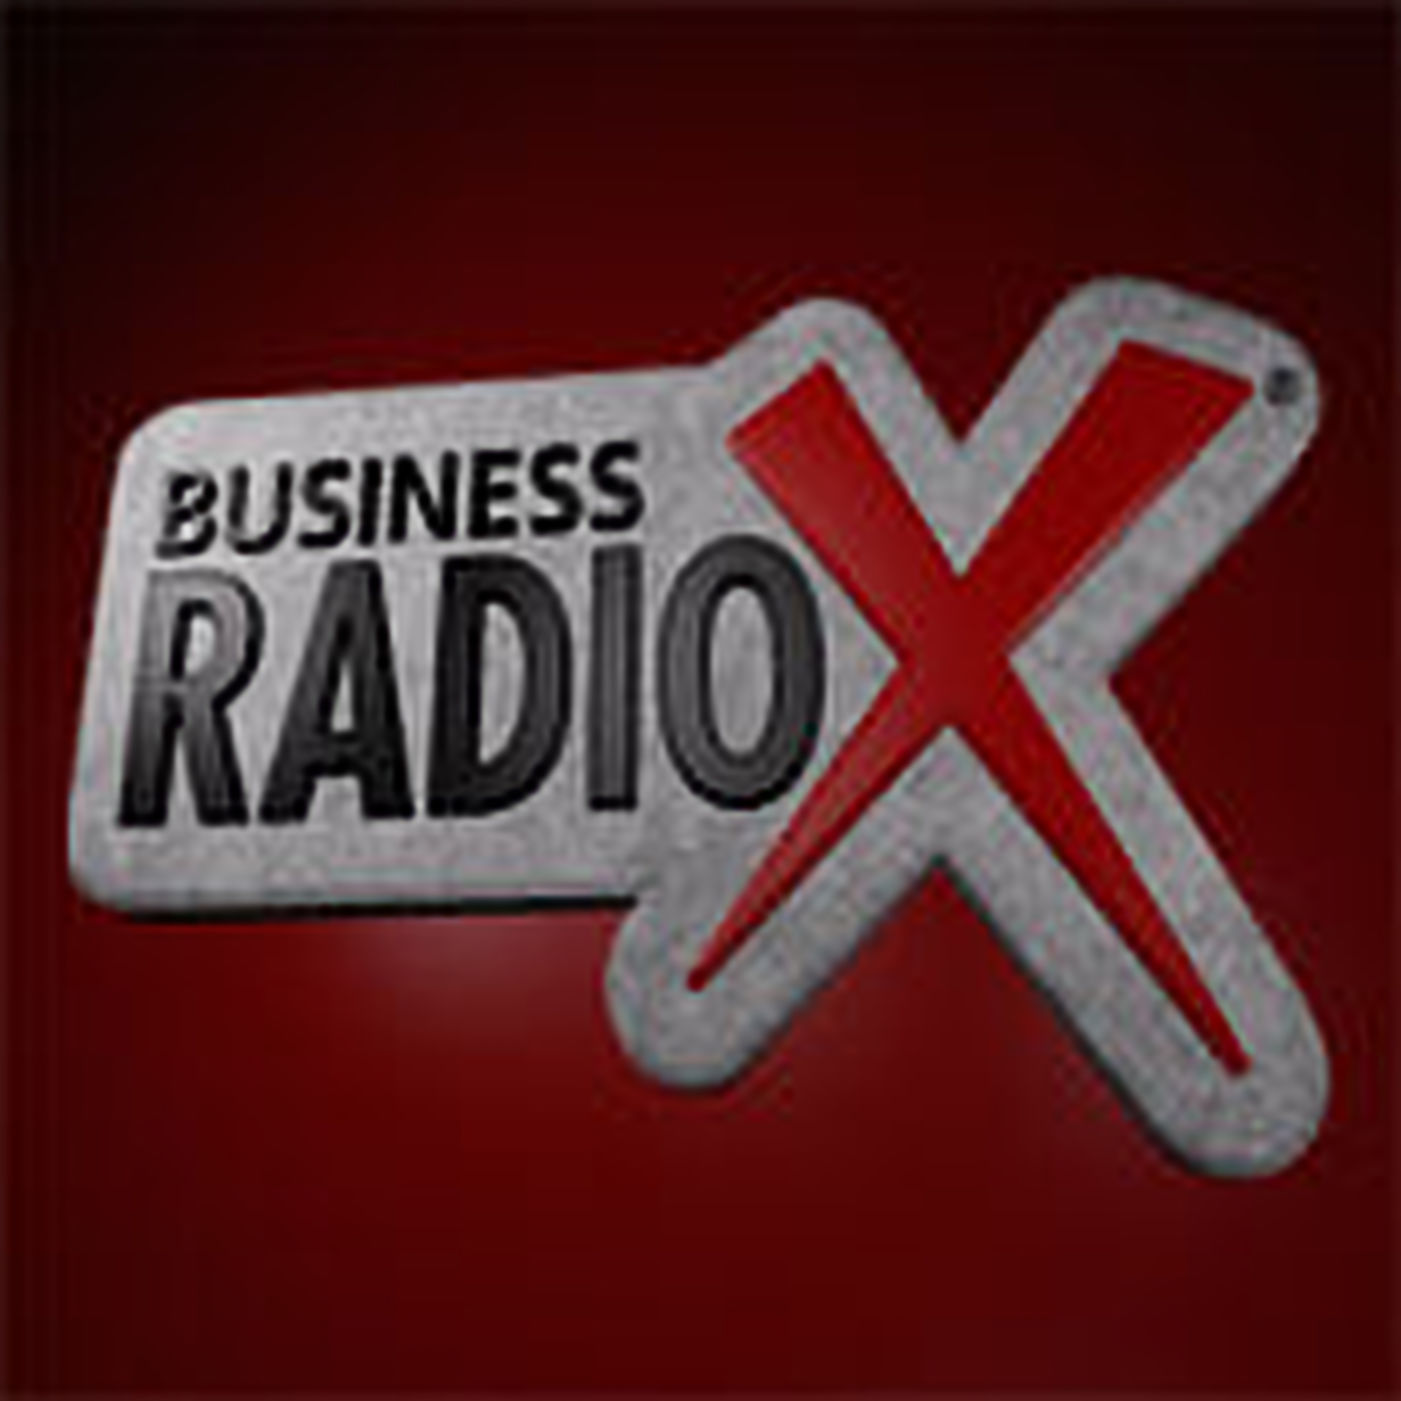 Biz Radio U Featuring Sven Cowart with Traxion